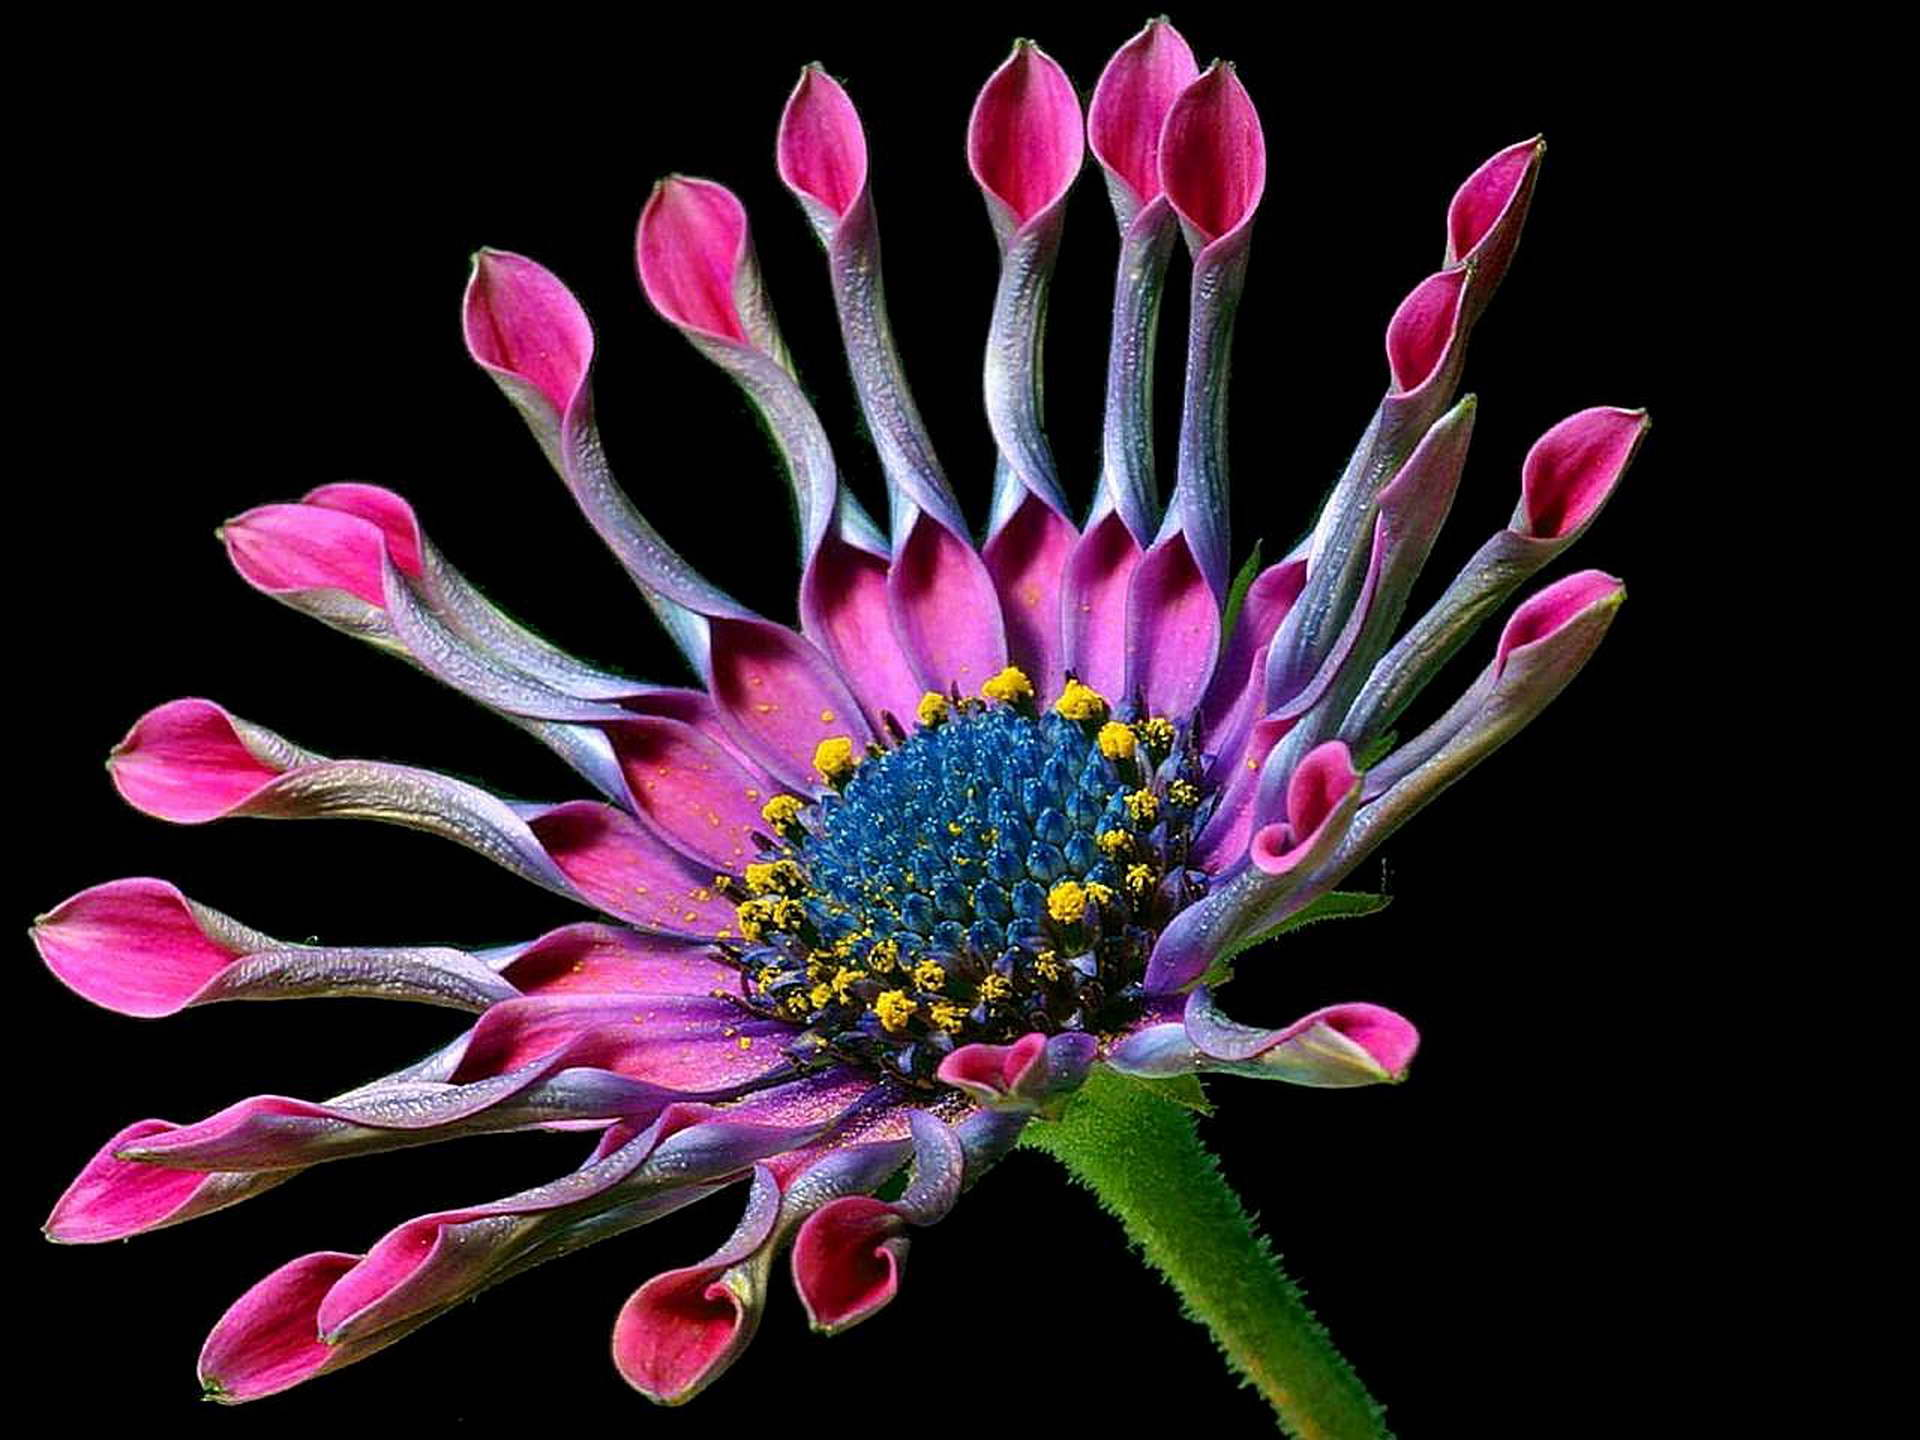 Free picture daisy daisies flowers petals pink pollen daisy daisies flowers petals pink pollen izmirmasajfo Images